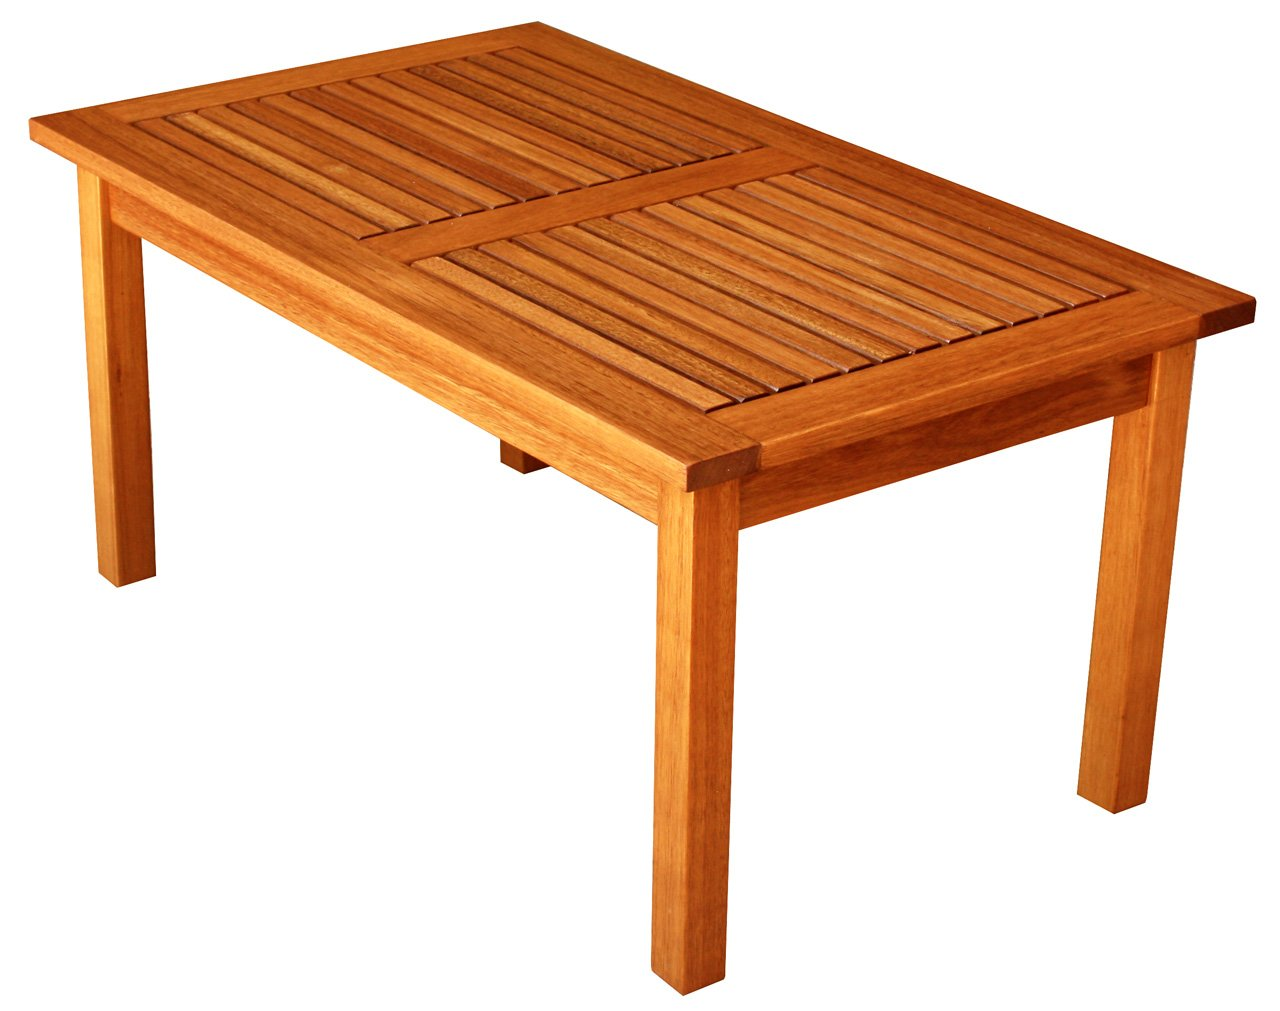 LuuNguyen Outdoor Hardwood Coffee Table Natural Wood Finish